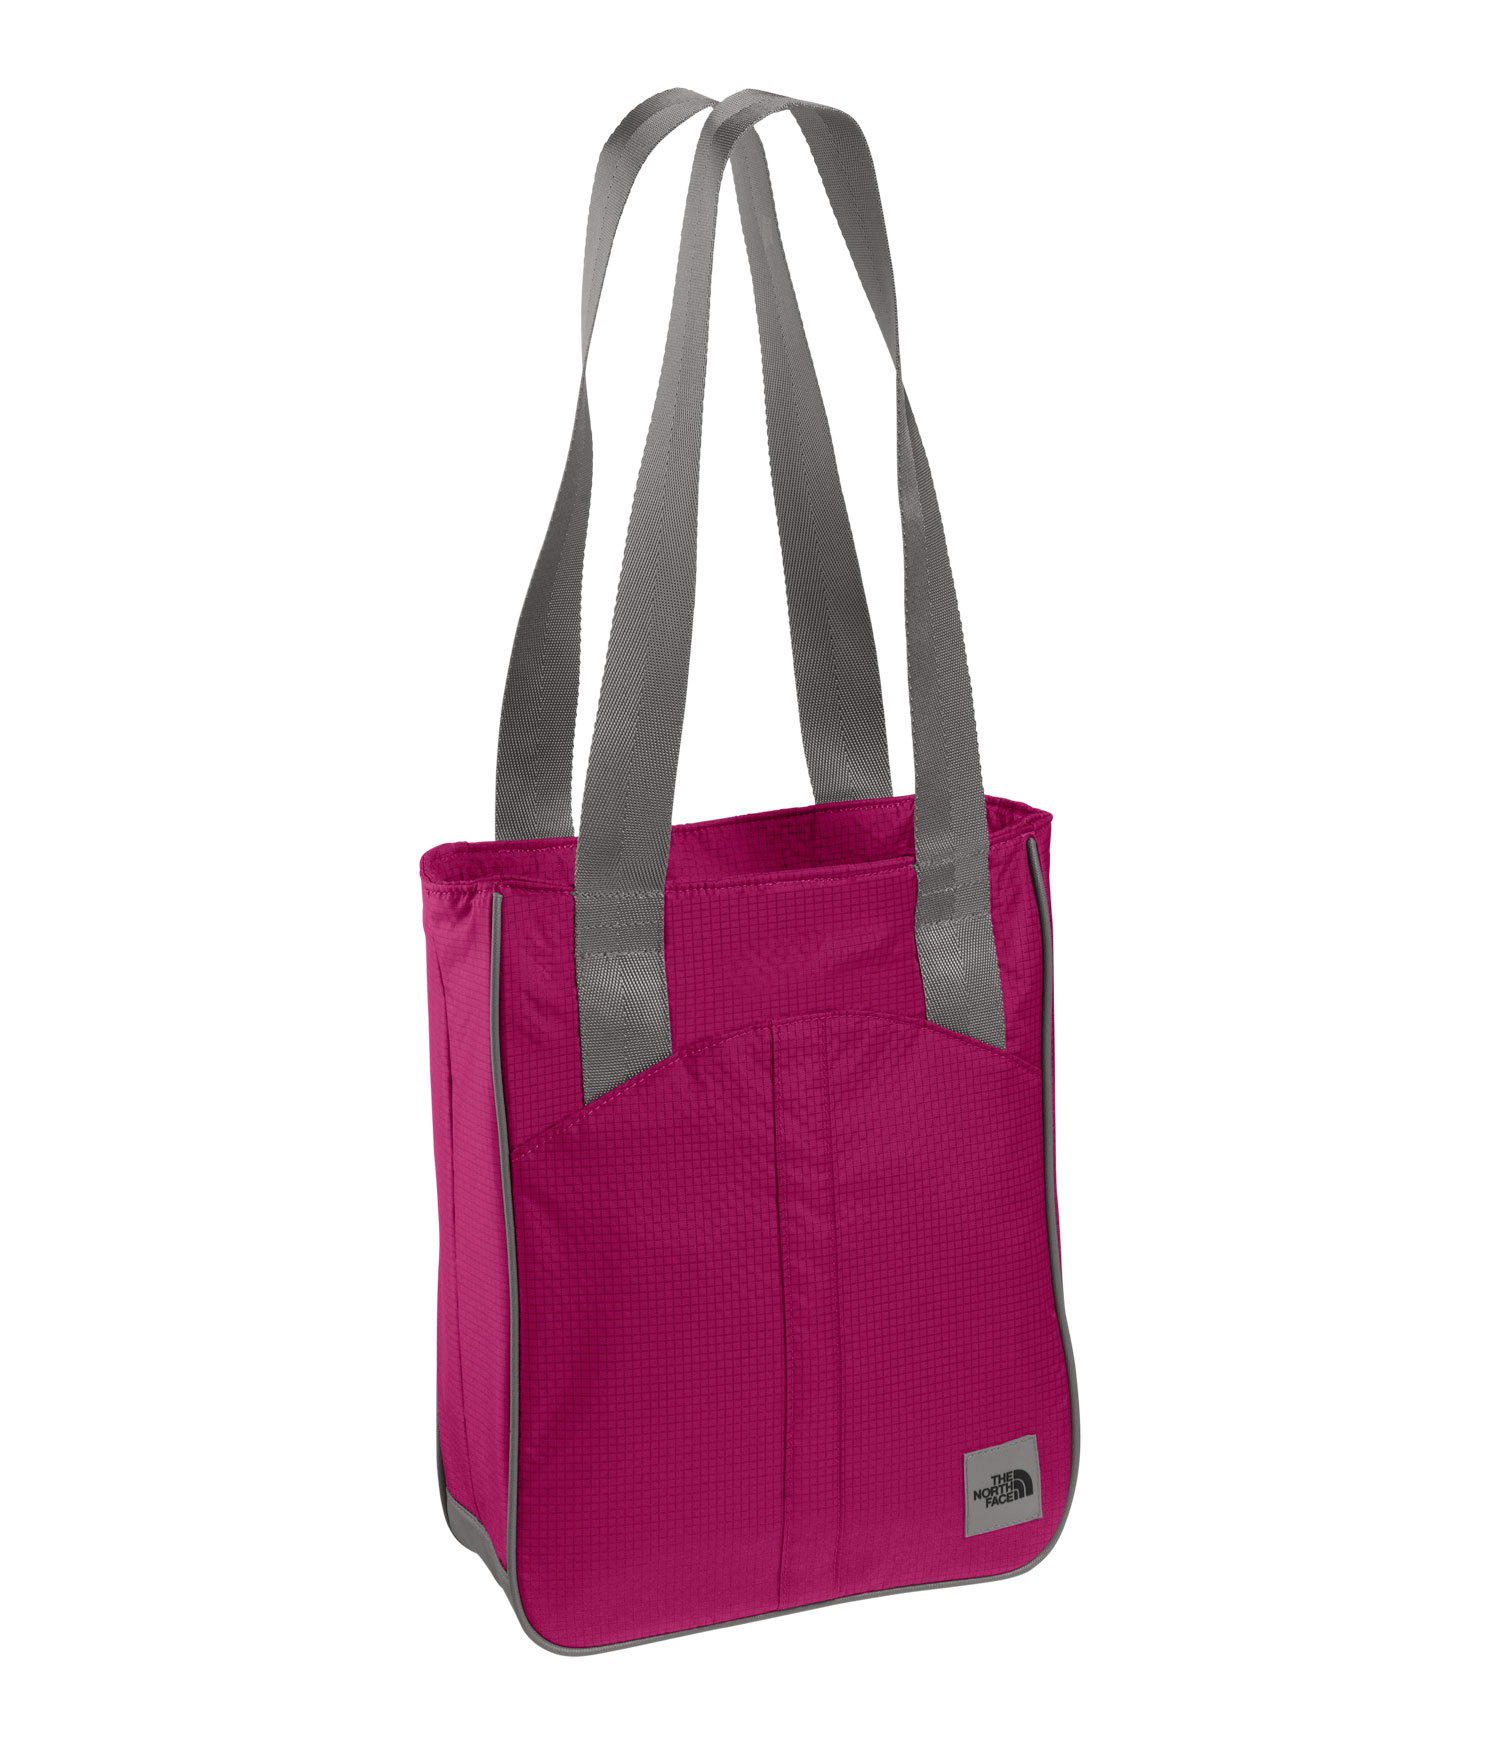 Entertainment New 8-liter tote designed for everyday use. Made with recycled fabric.Key Features of The North Face Tegan Tote: Small tote designed for everyday use Comfortable webbing tote shoulder straps Main compartment with zippered closure Interior open and zippered pockets - $24.95